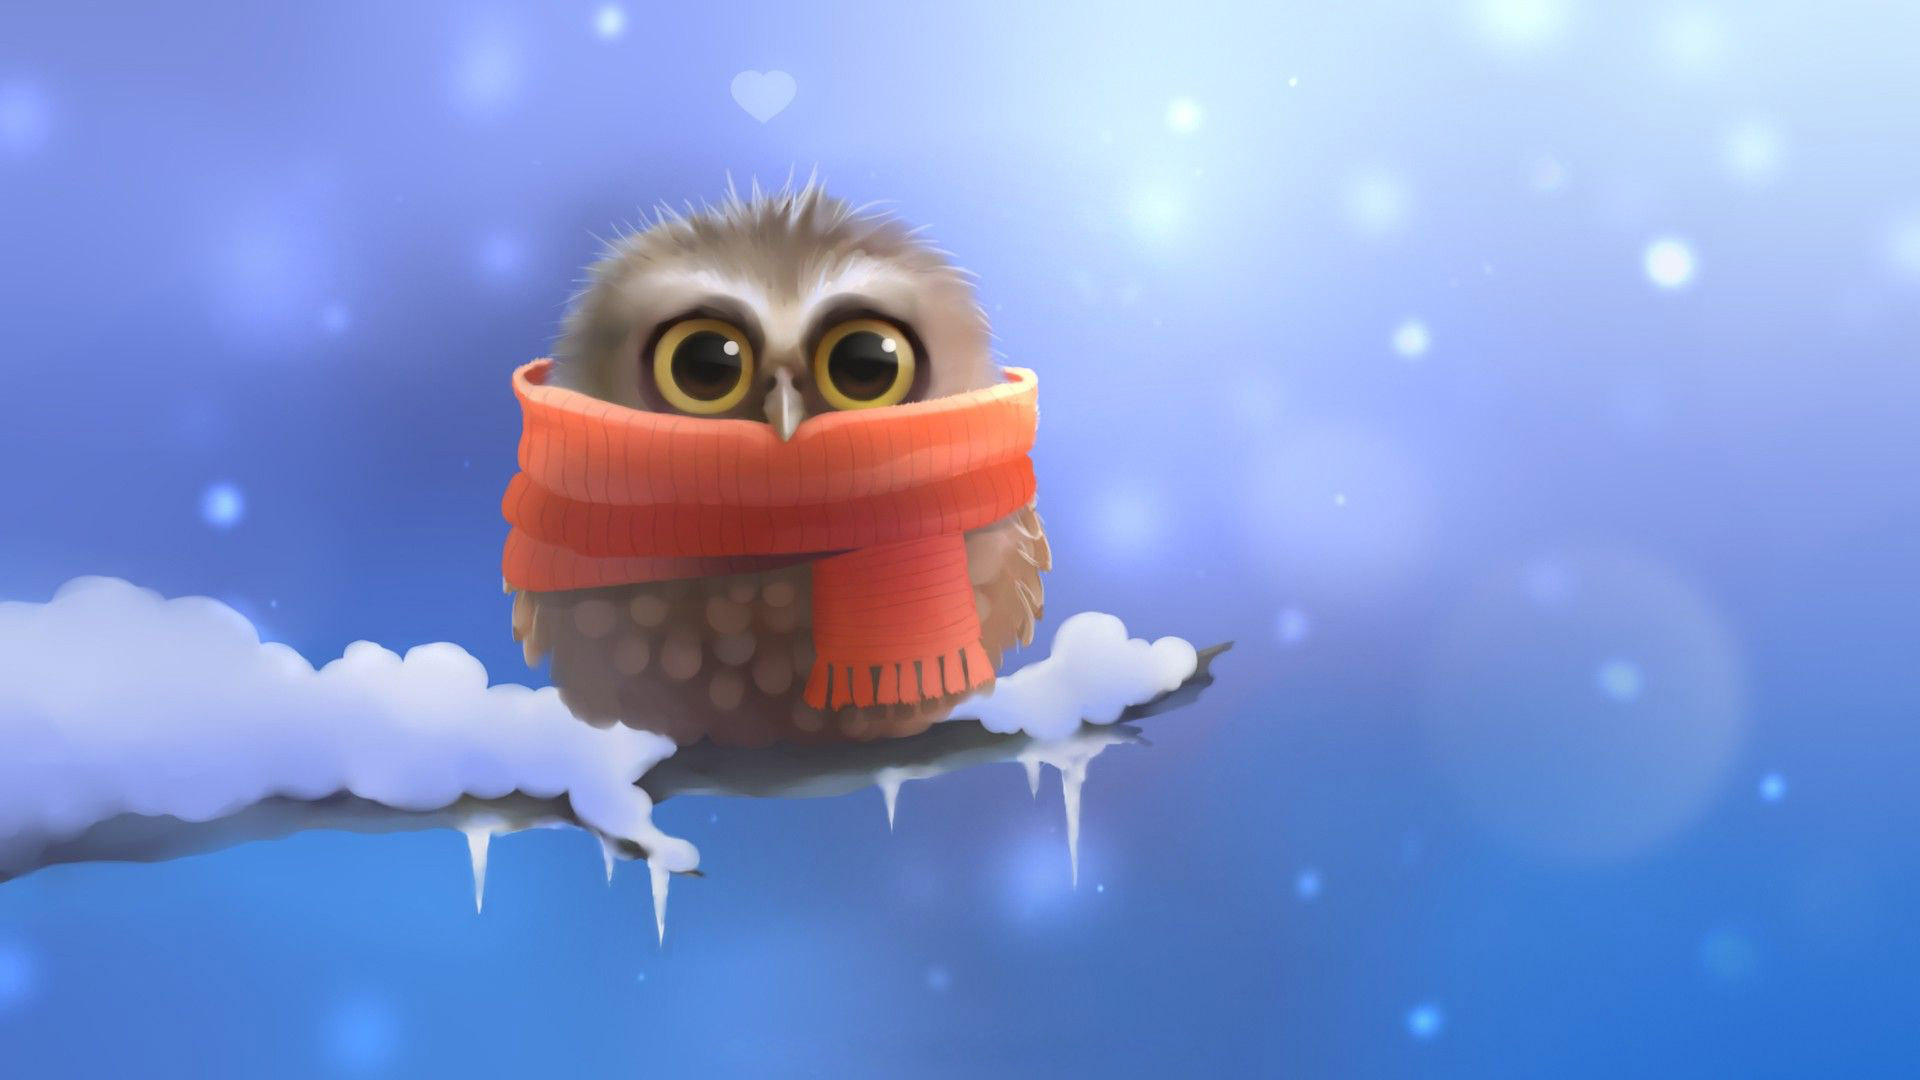 Owl On A Frozen Branch wallpapers HD   414859 1920x1080